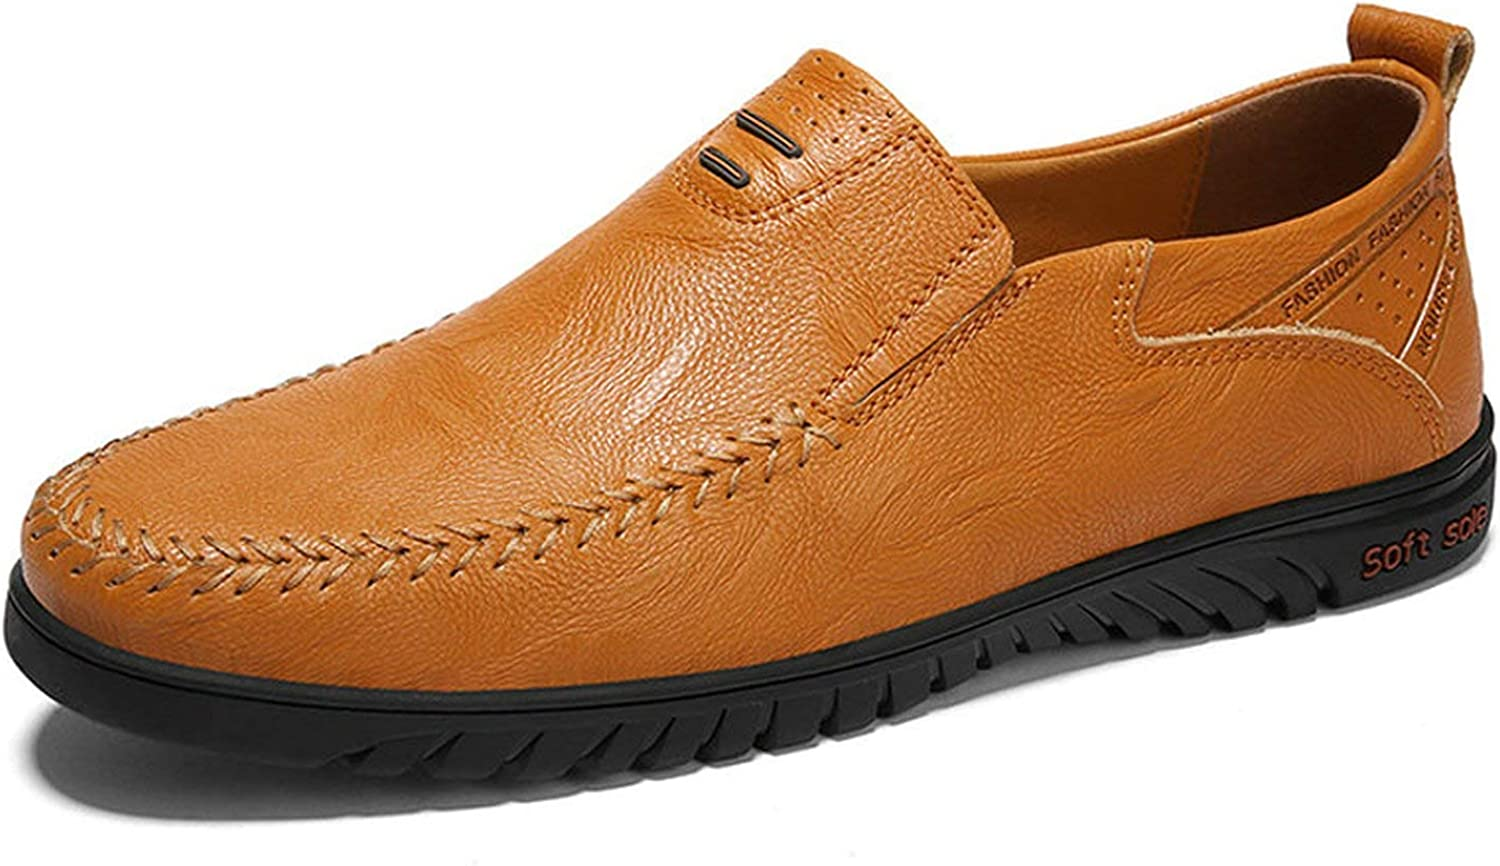 ALWAYS ME Genuine Leather Comfortable Men Casual shoes Footwear shoes Flats Slip On Lazy shoes